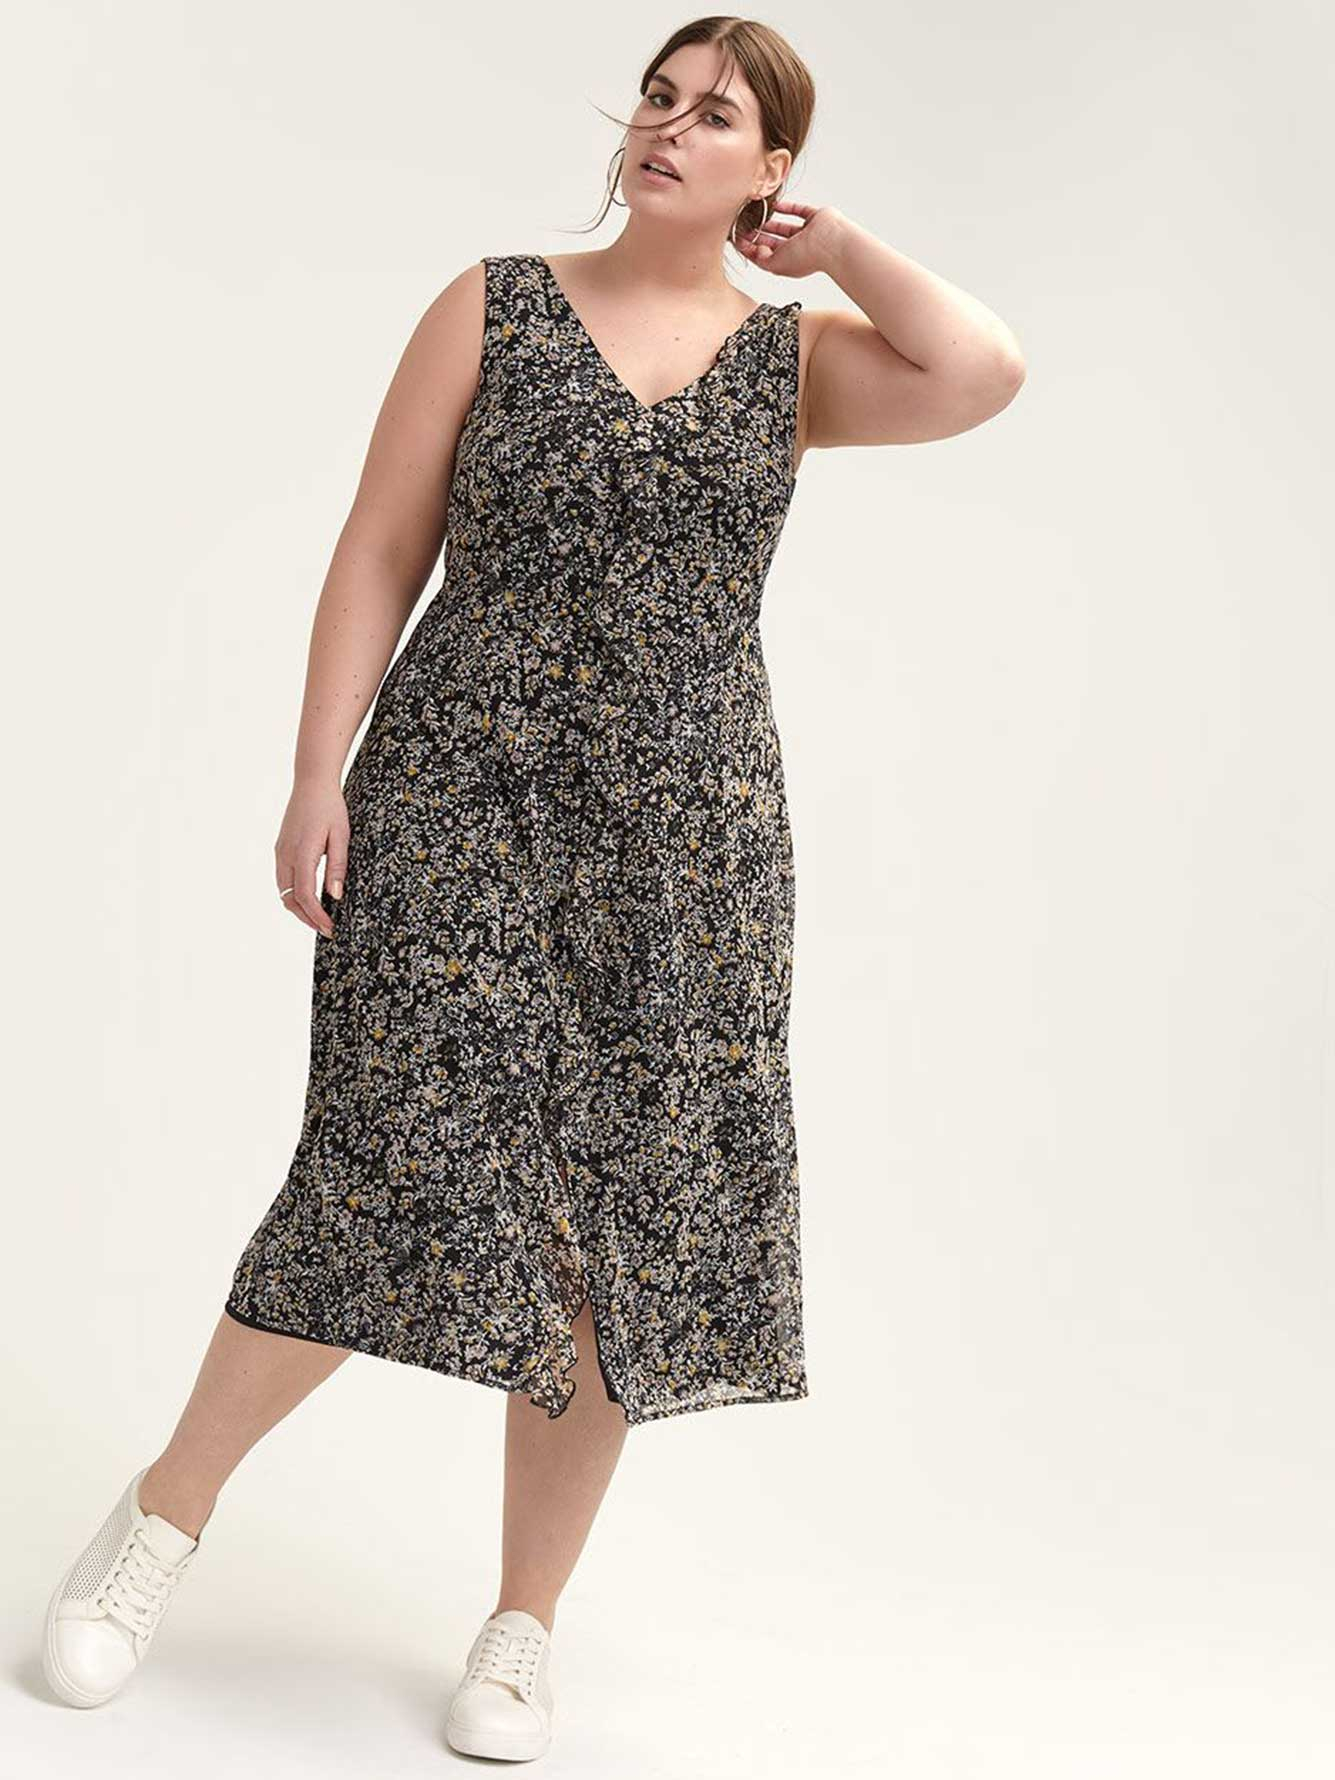 Floral Mesh Dress with Front Ruffle Trim - Michel Studio